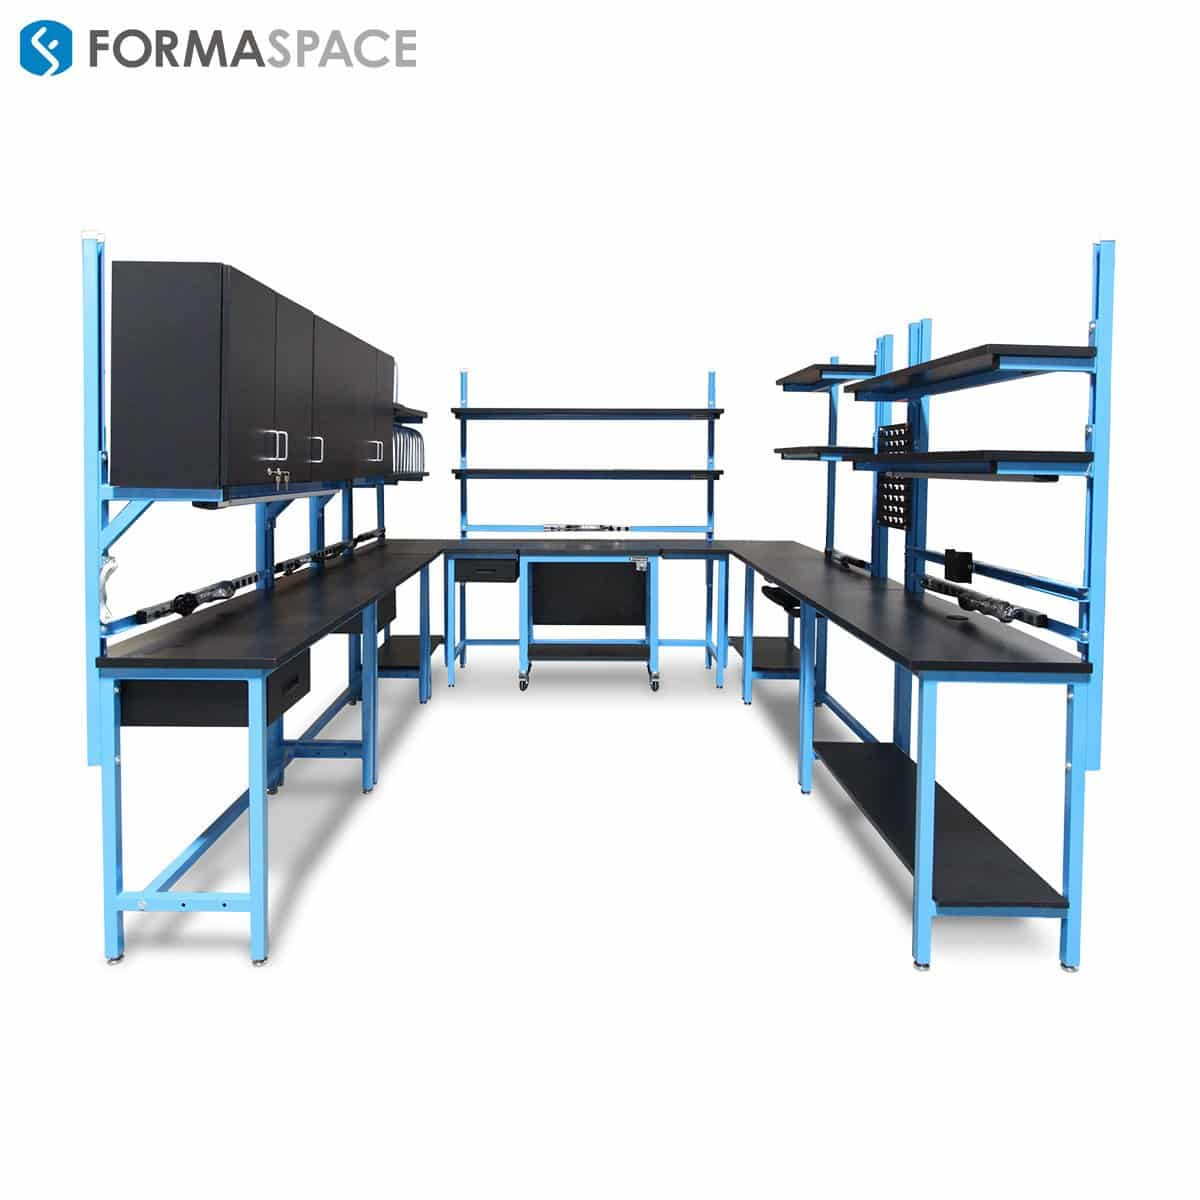 U Shaped Modular It Station Formaspace